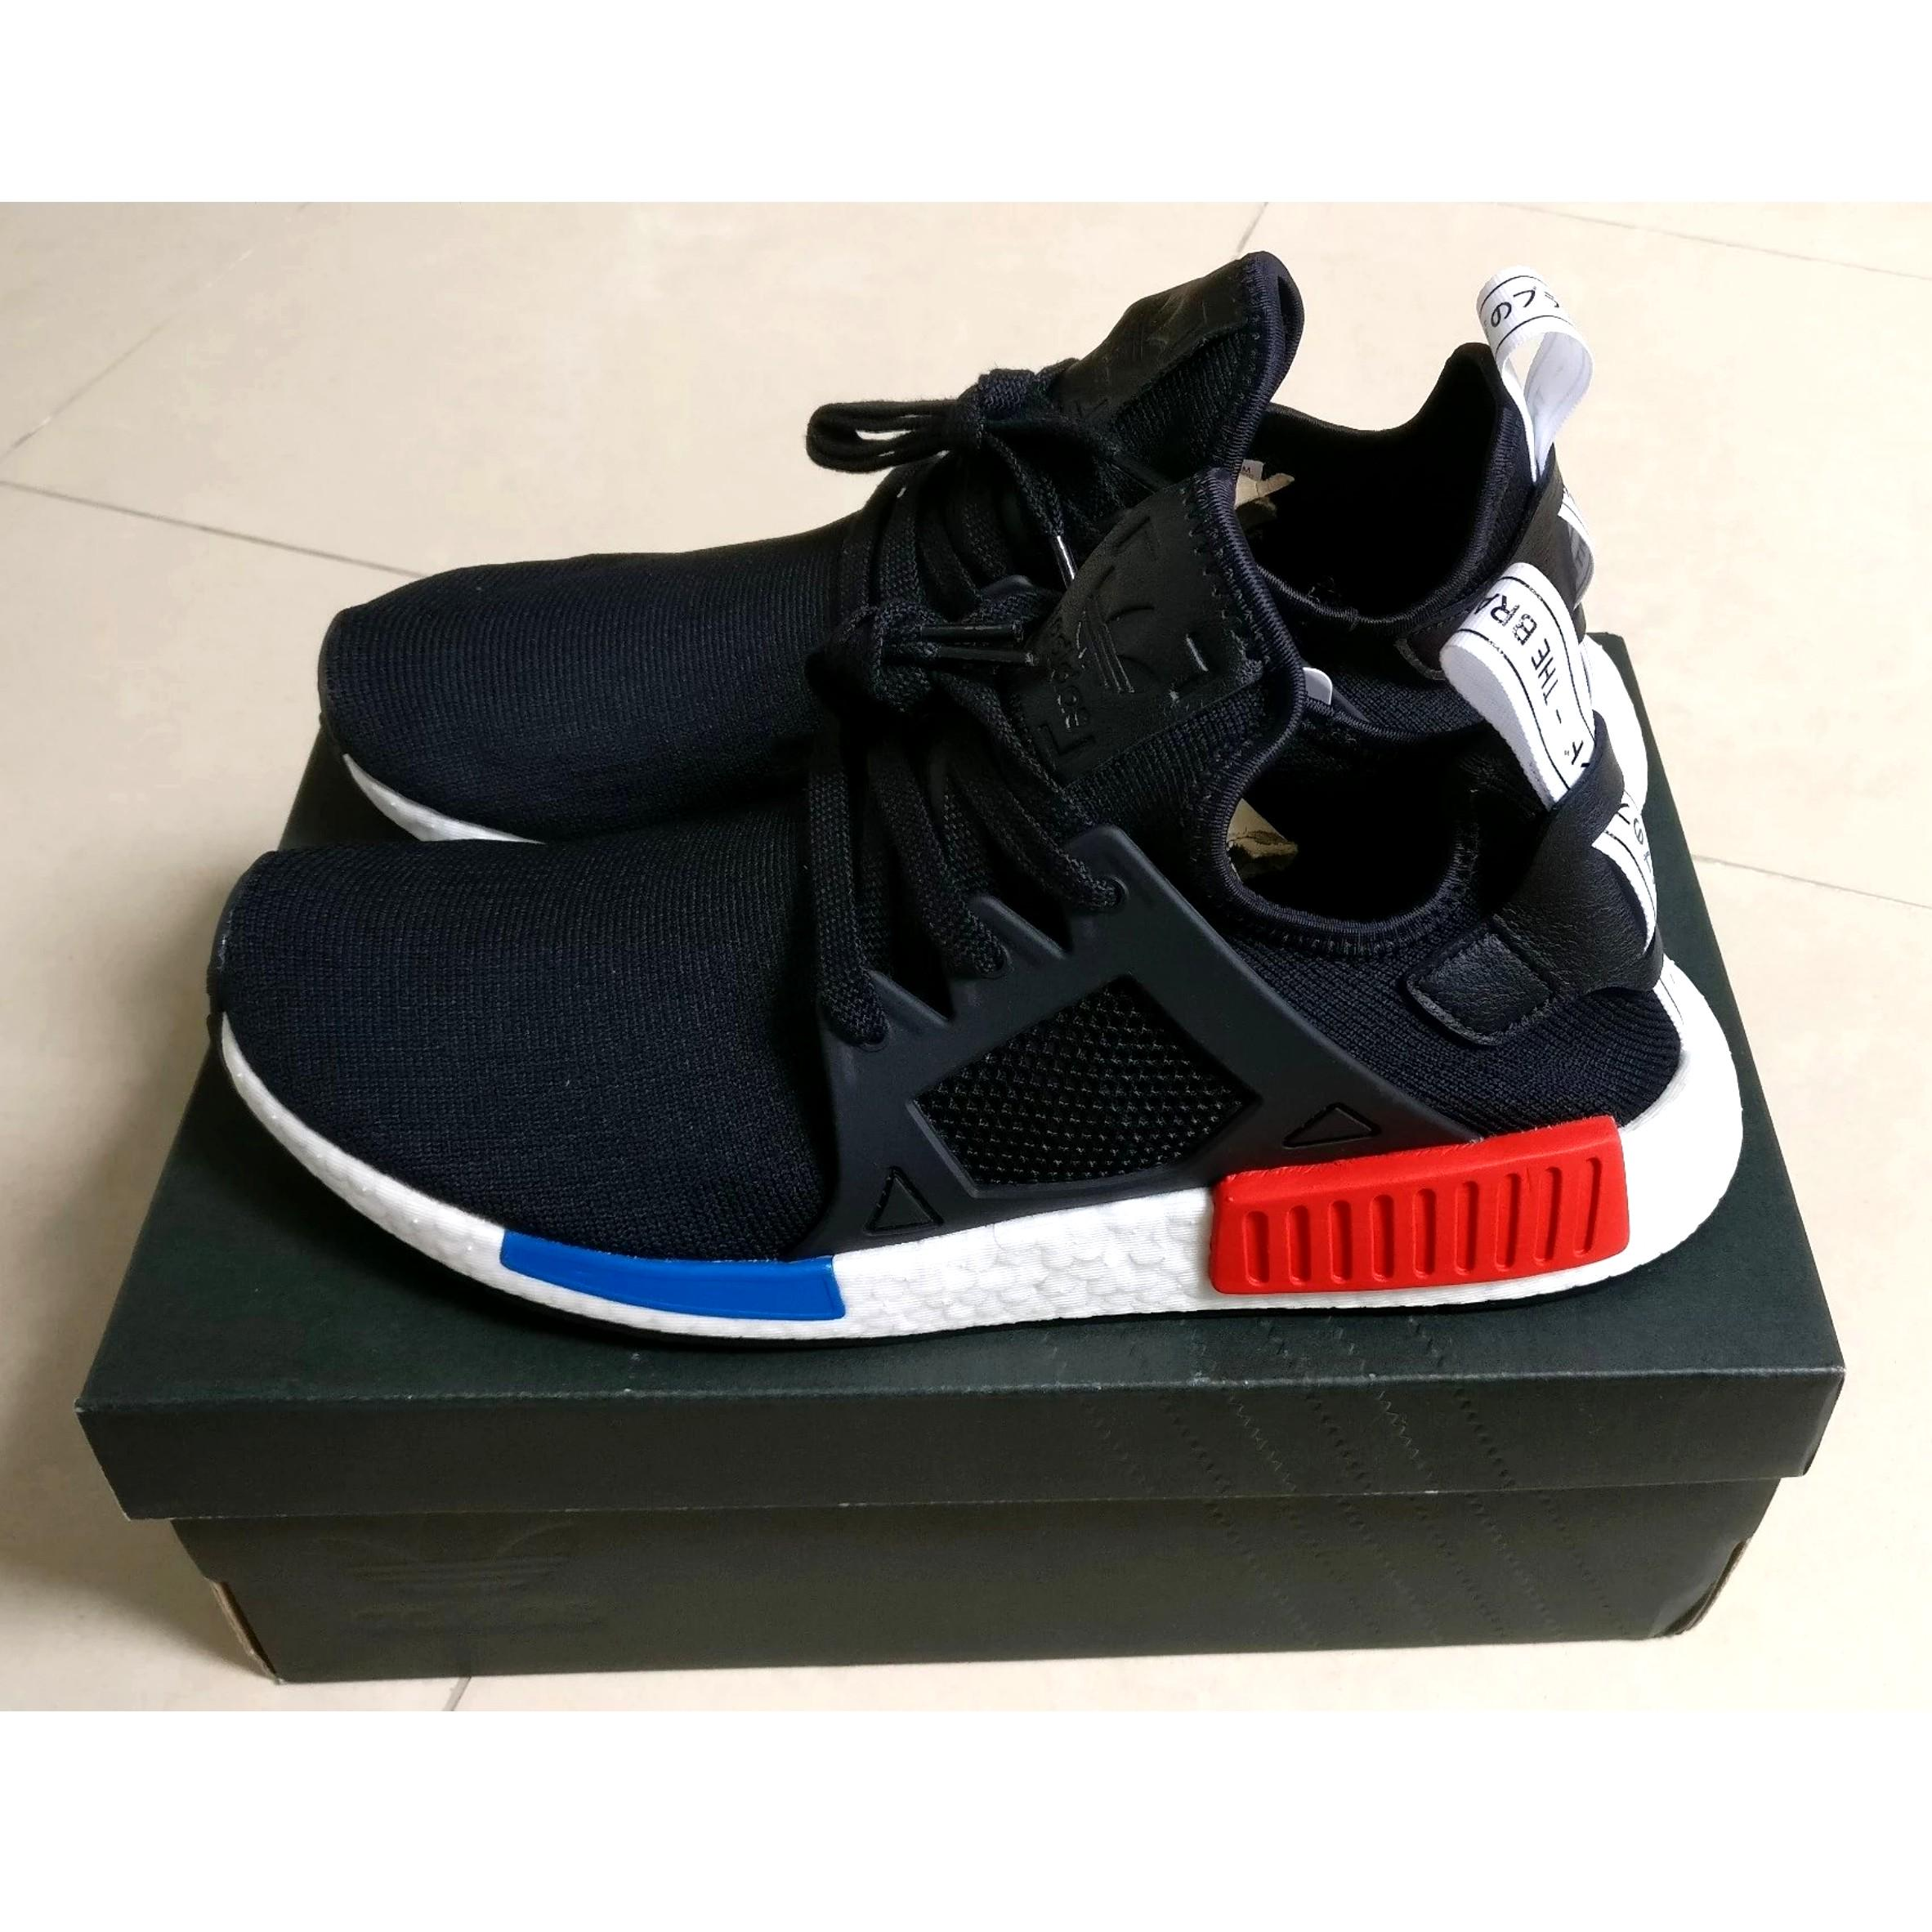 designer fashion 04924 52995 Adidas Nmd XR1 PK OG (BN in box) 100% Authentic with Receipt ...